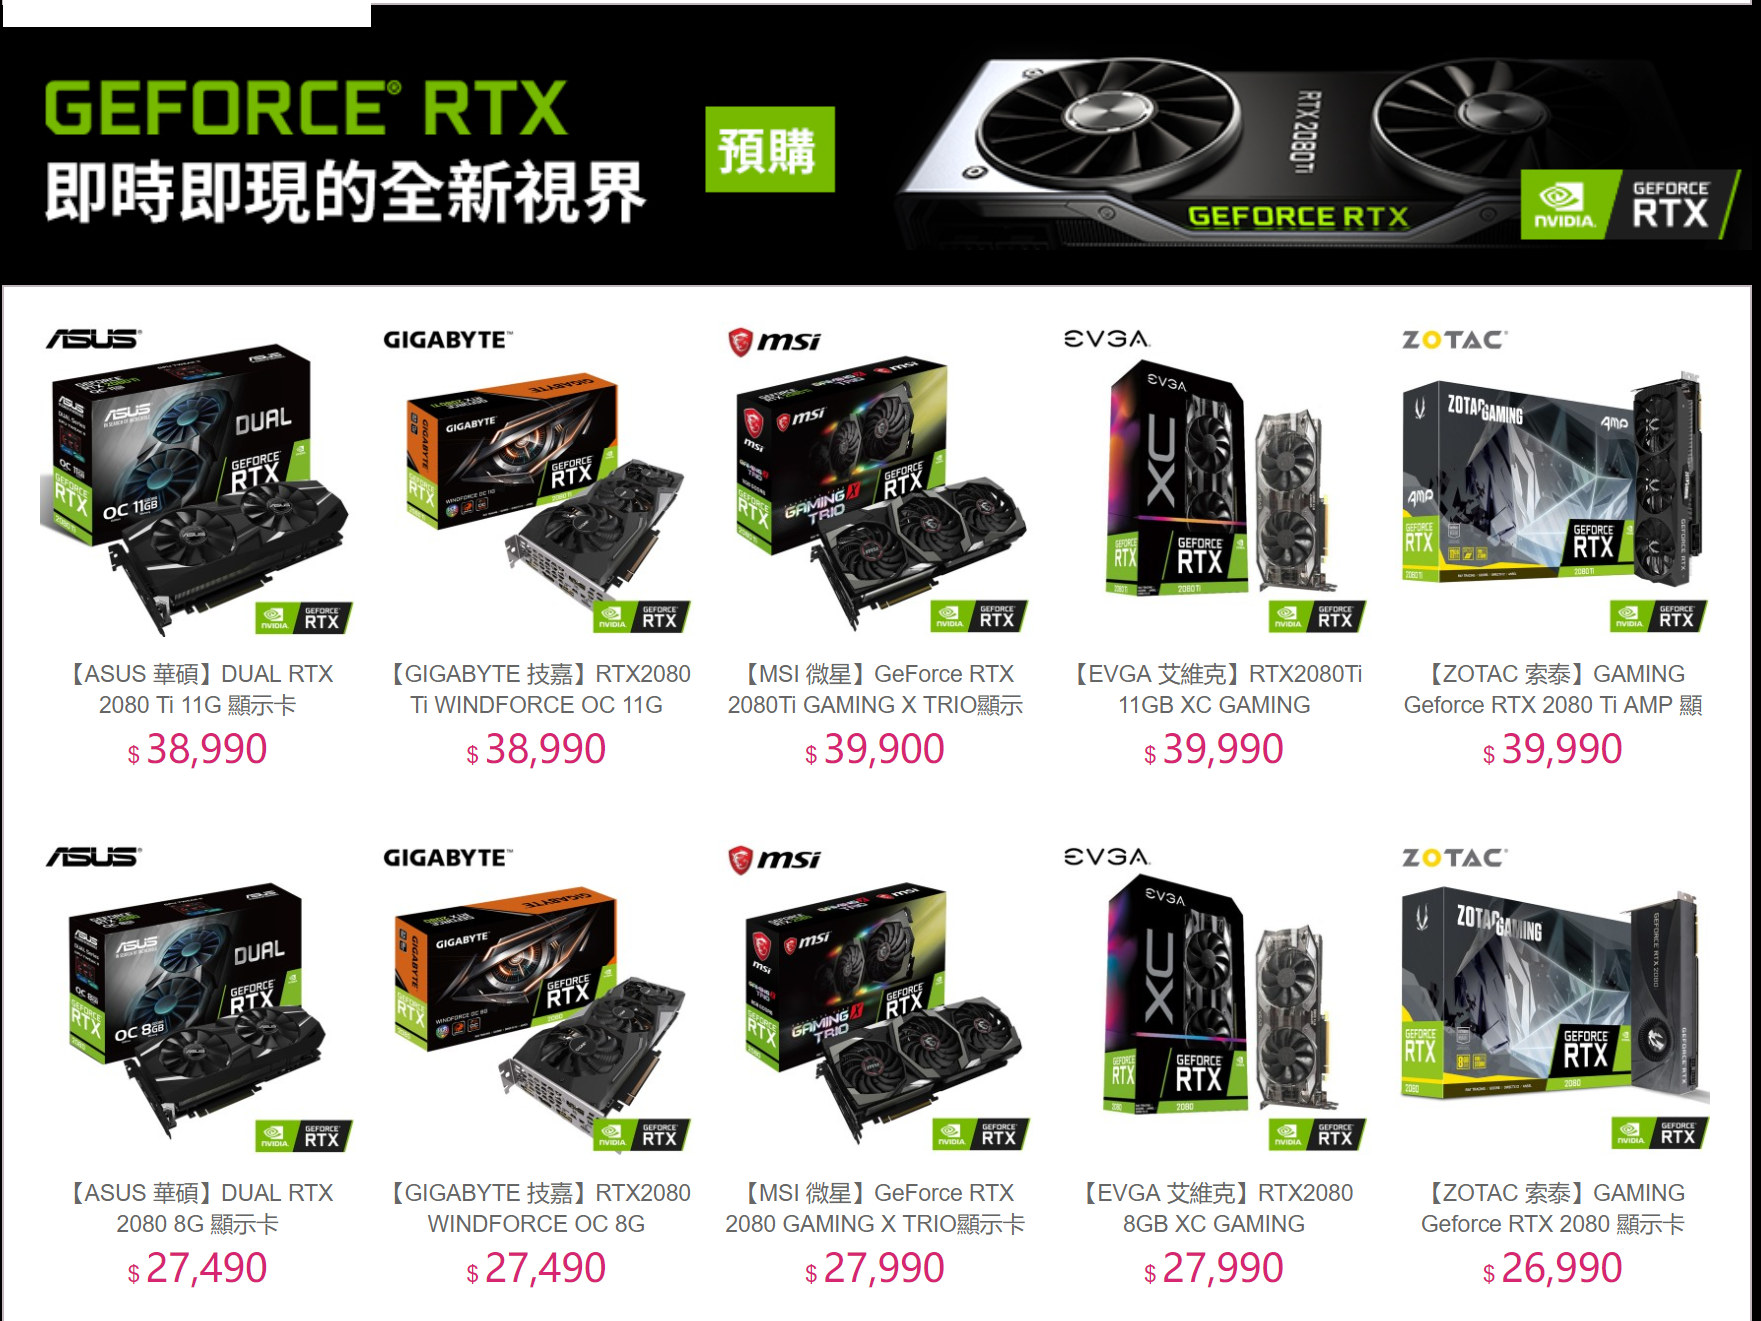 , Nvidia, Graphics Cards & Video Adapters, Graphics processing unit, Turing, Pascal, XG Station, , Nvidia Quadro, GeForce 10 series, geforce, product, technology, electronics, product, electronics accessory, multimedia, font, brand, gadget, GeForce